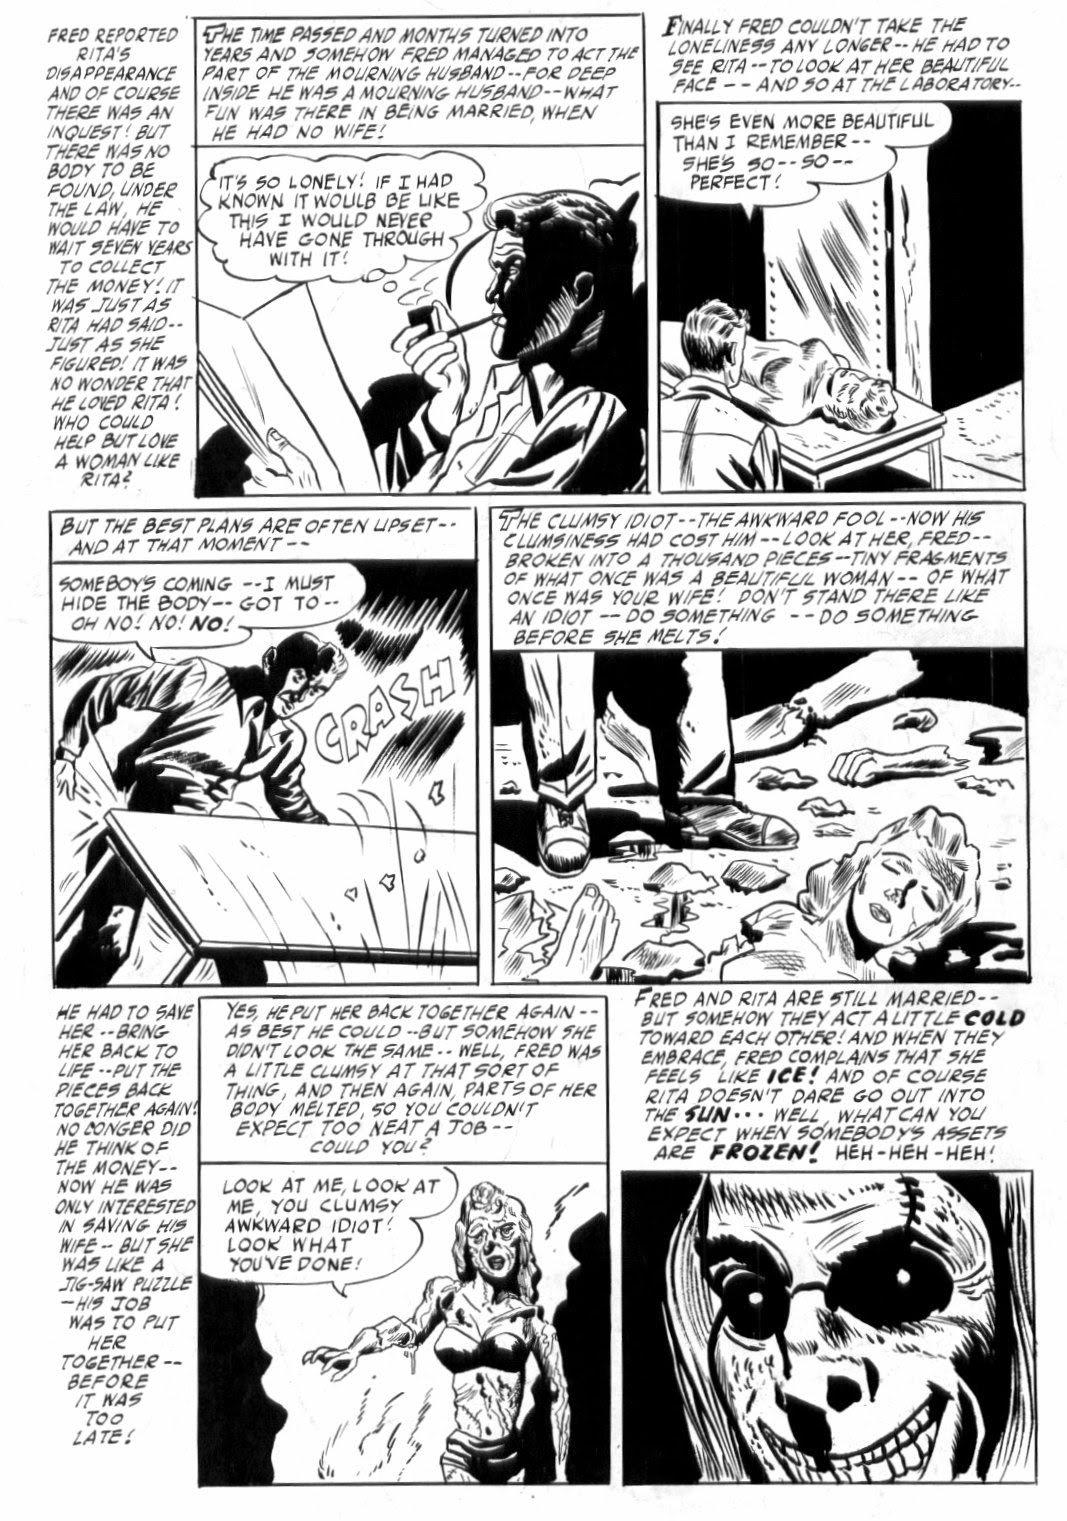 Shock (1969) 2 Page 52